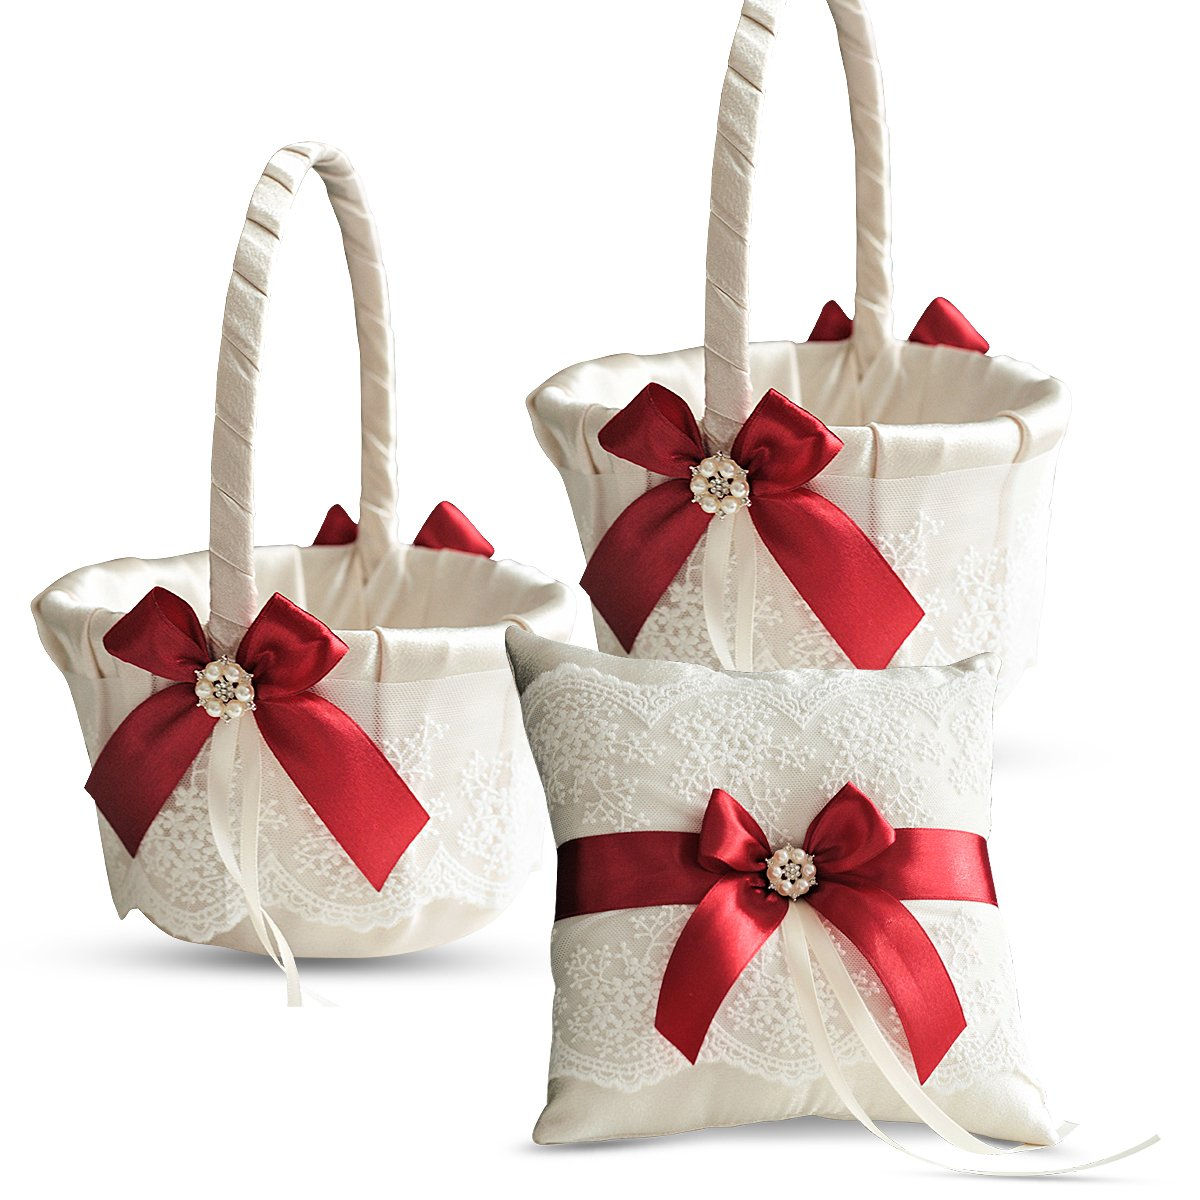 Alex Emotions Ivory Ring Bearer Pillow and Basket Set | Lace Collection | Flower Girl & Welcome Basket for Guest | Handmade Wedding Baskets & Pillows (RED)